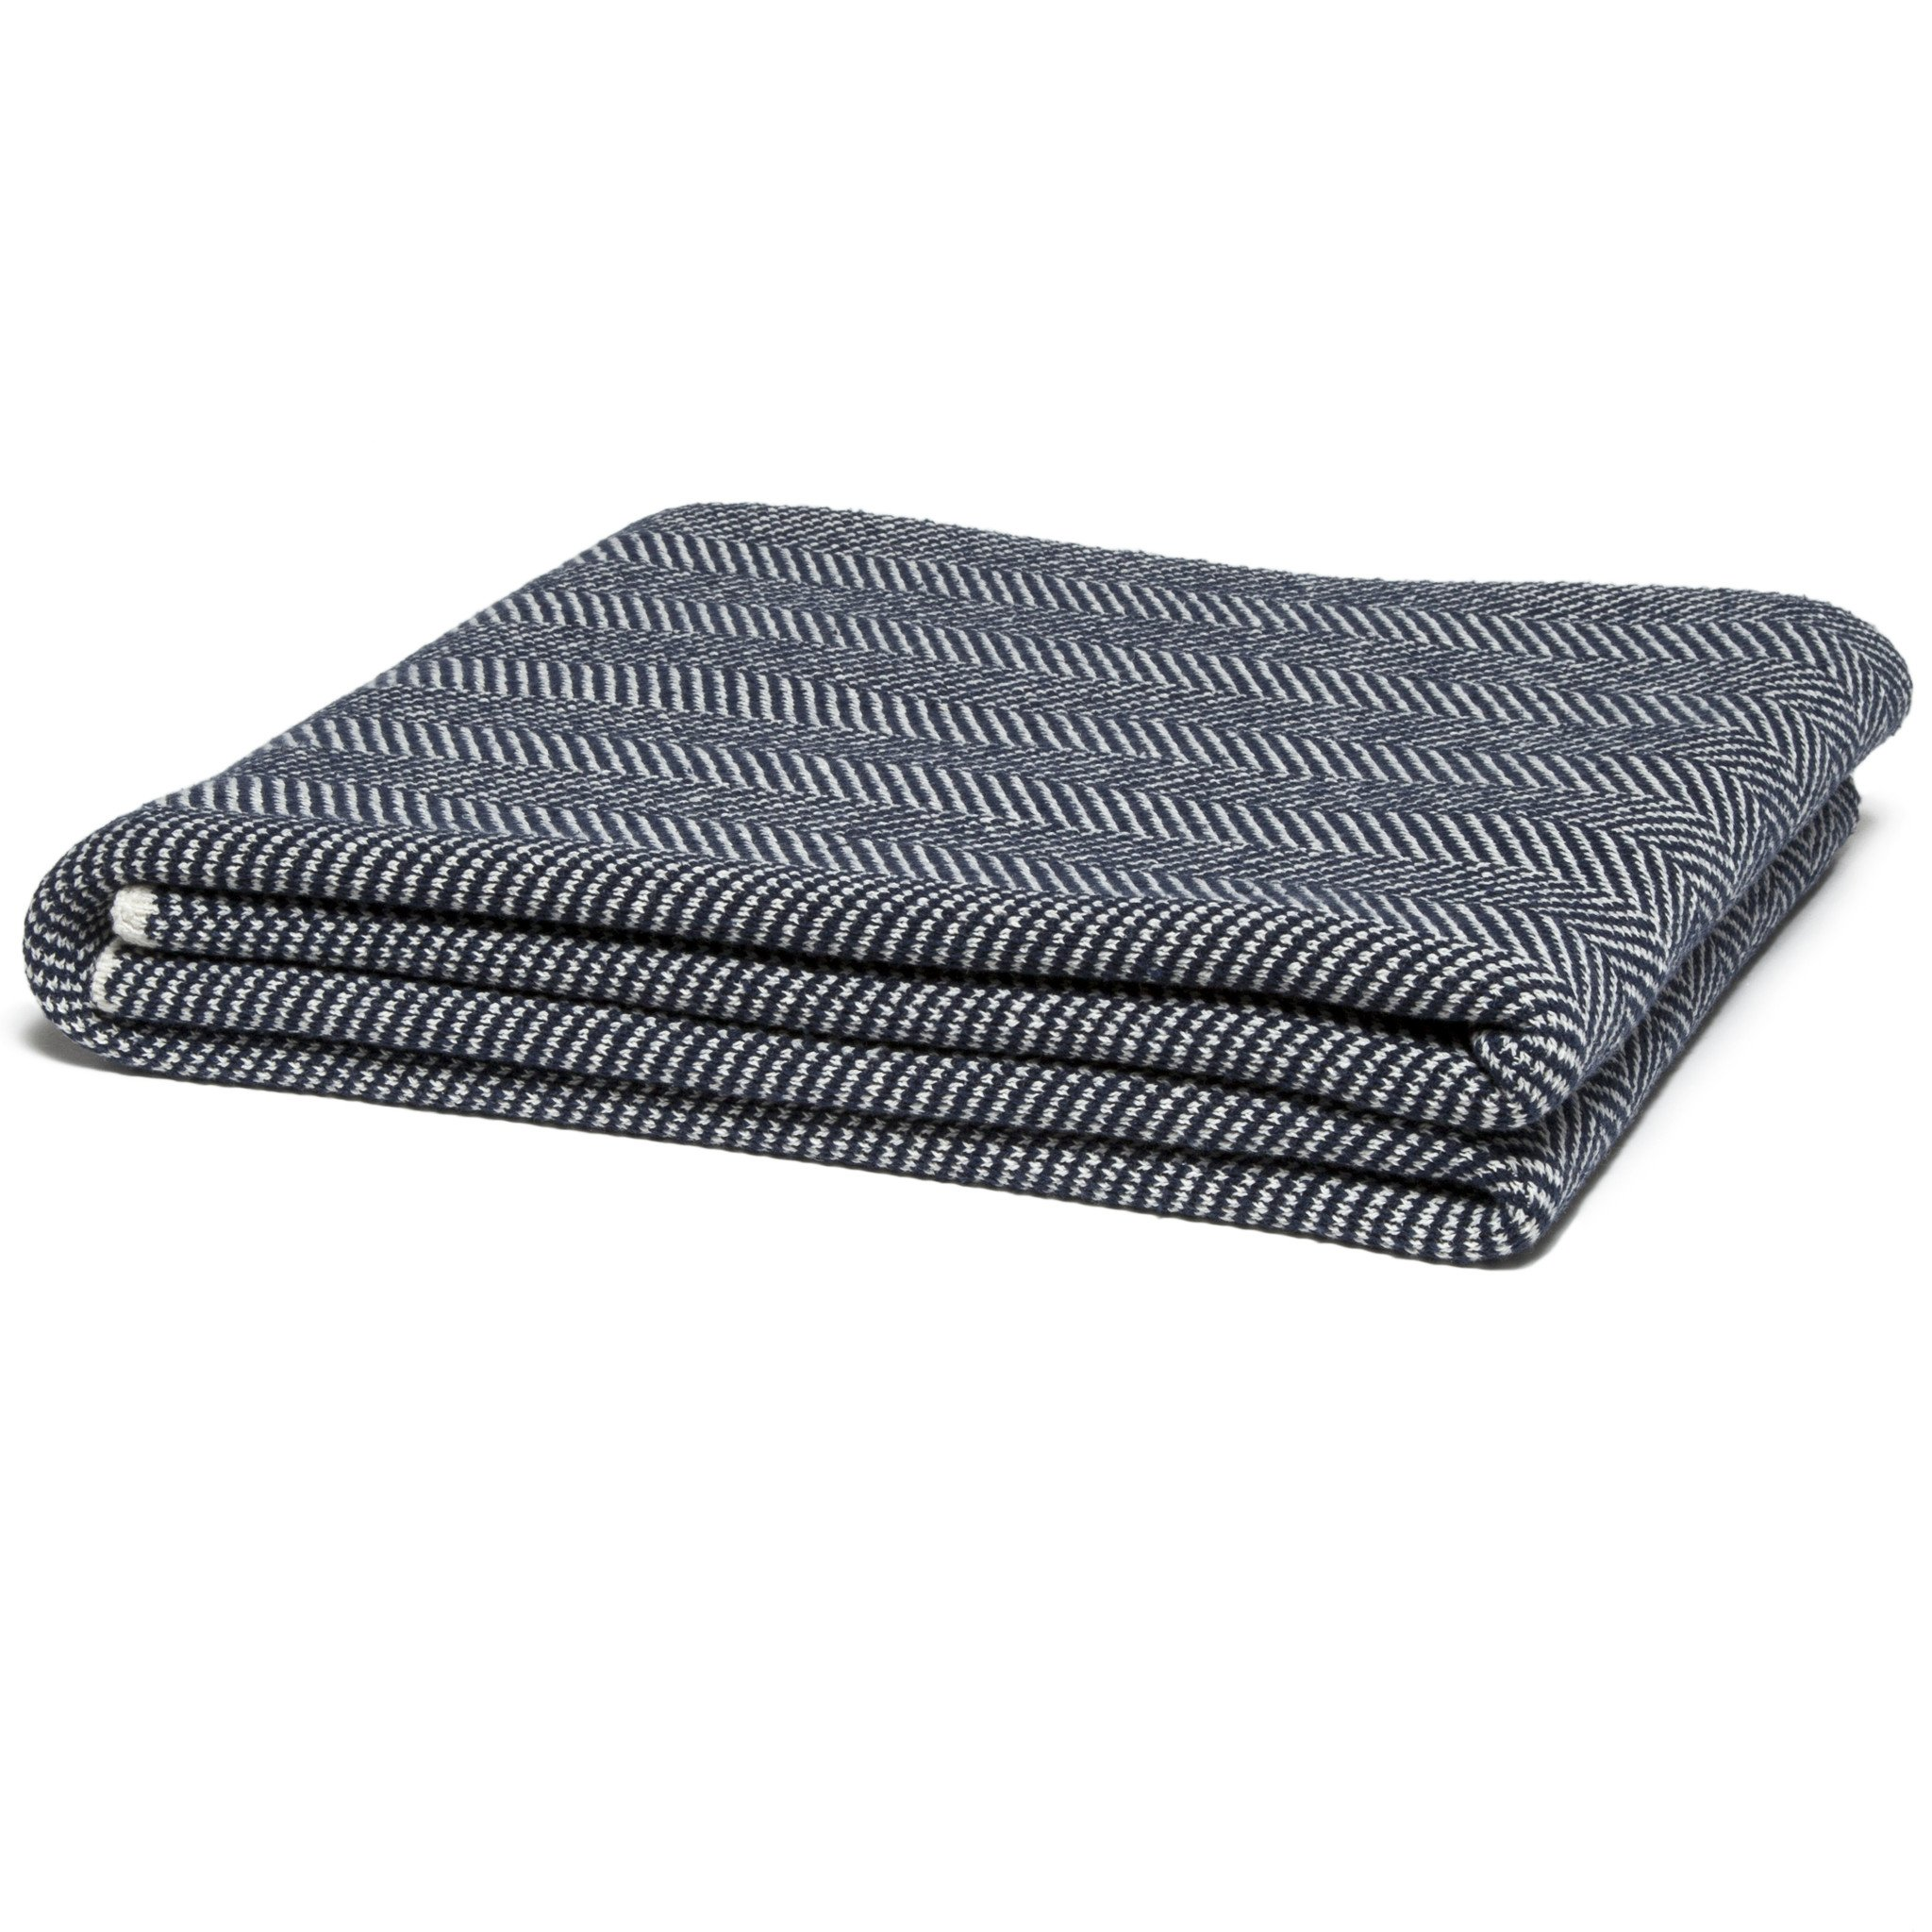 Navy Blue Herringbone Print Throw Blanket